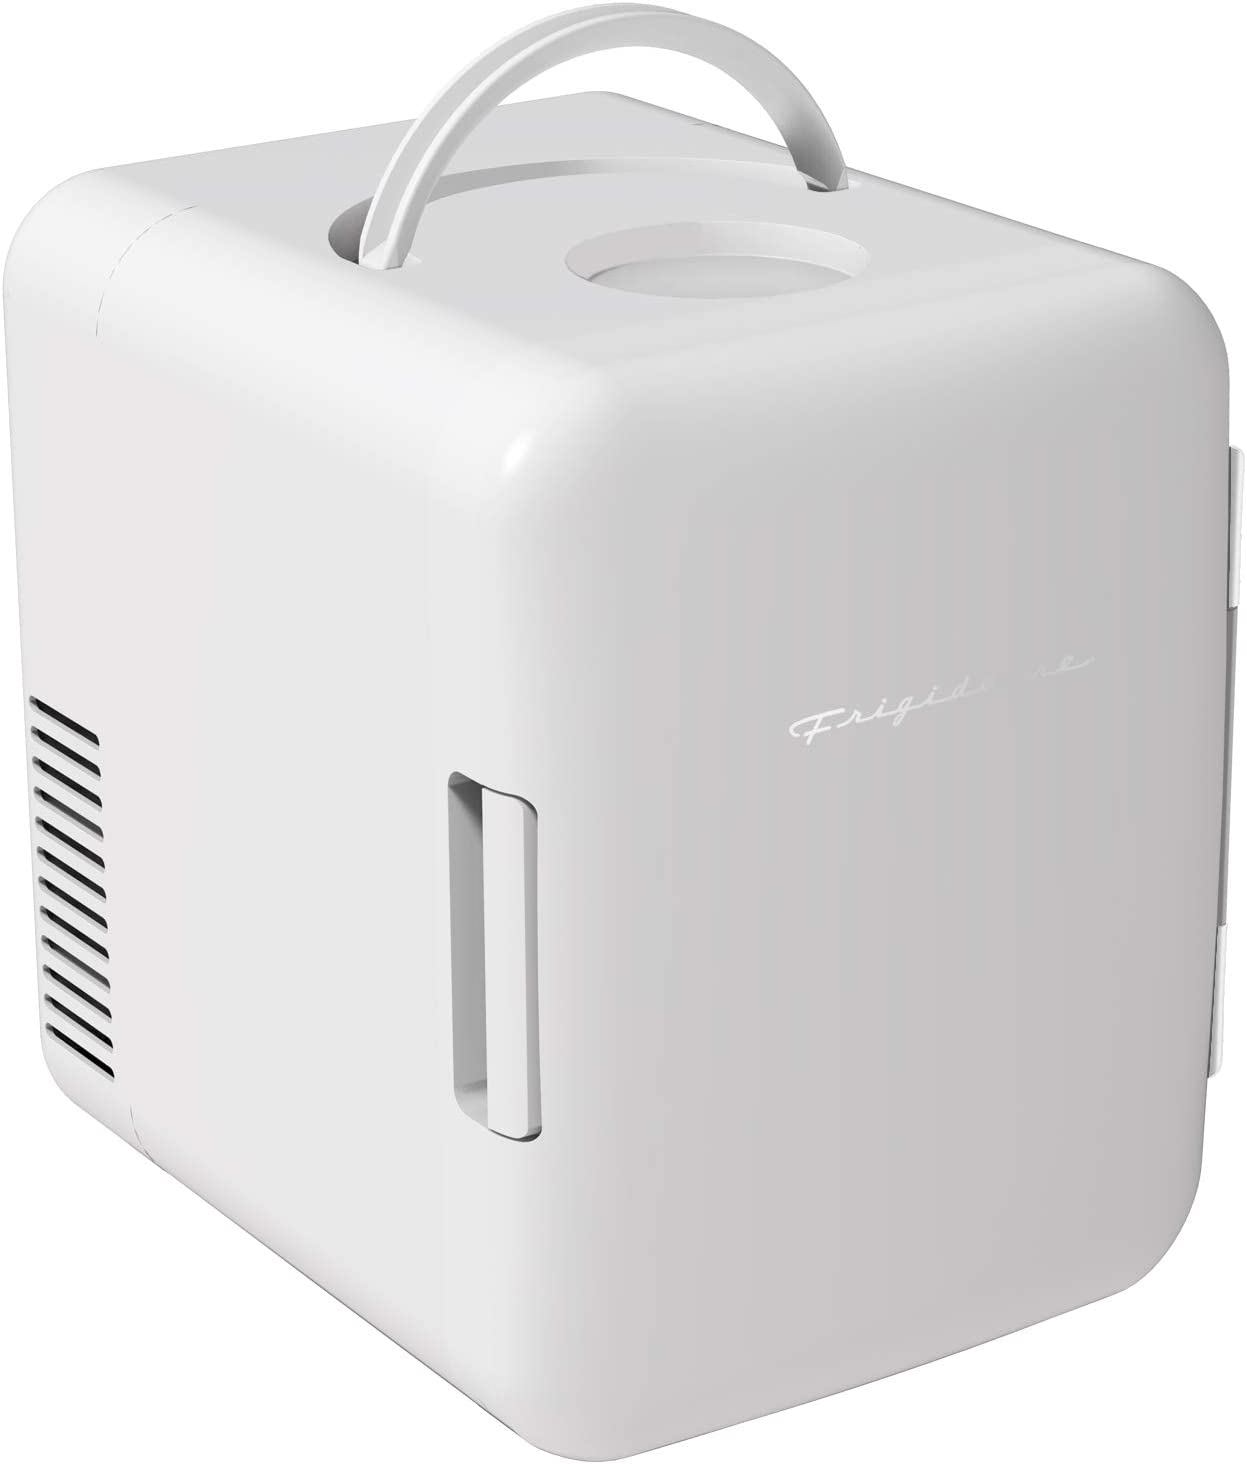 Frigidaire Mini Portable Compact Personal Fridge Cools & Heats, 4 Liter Capacity Chills Six 12 oz Cans, 100% Freon-Free & Eco Friendly, Includes Plugs for Home Outlet & 12V Car Charger - White